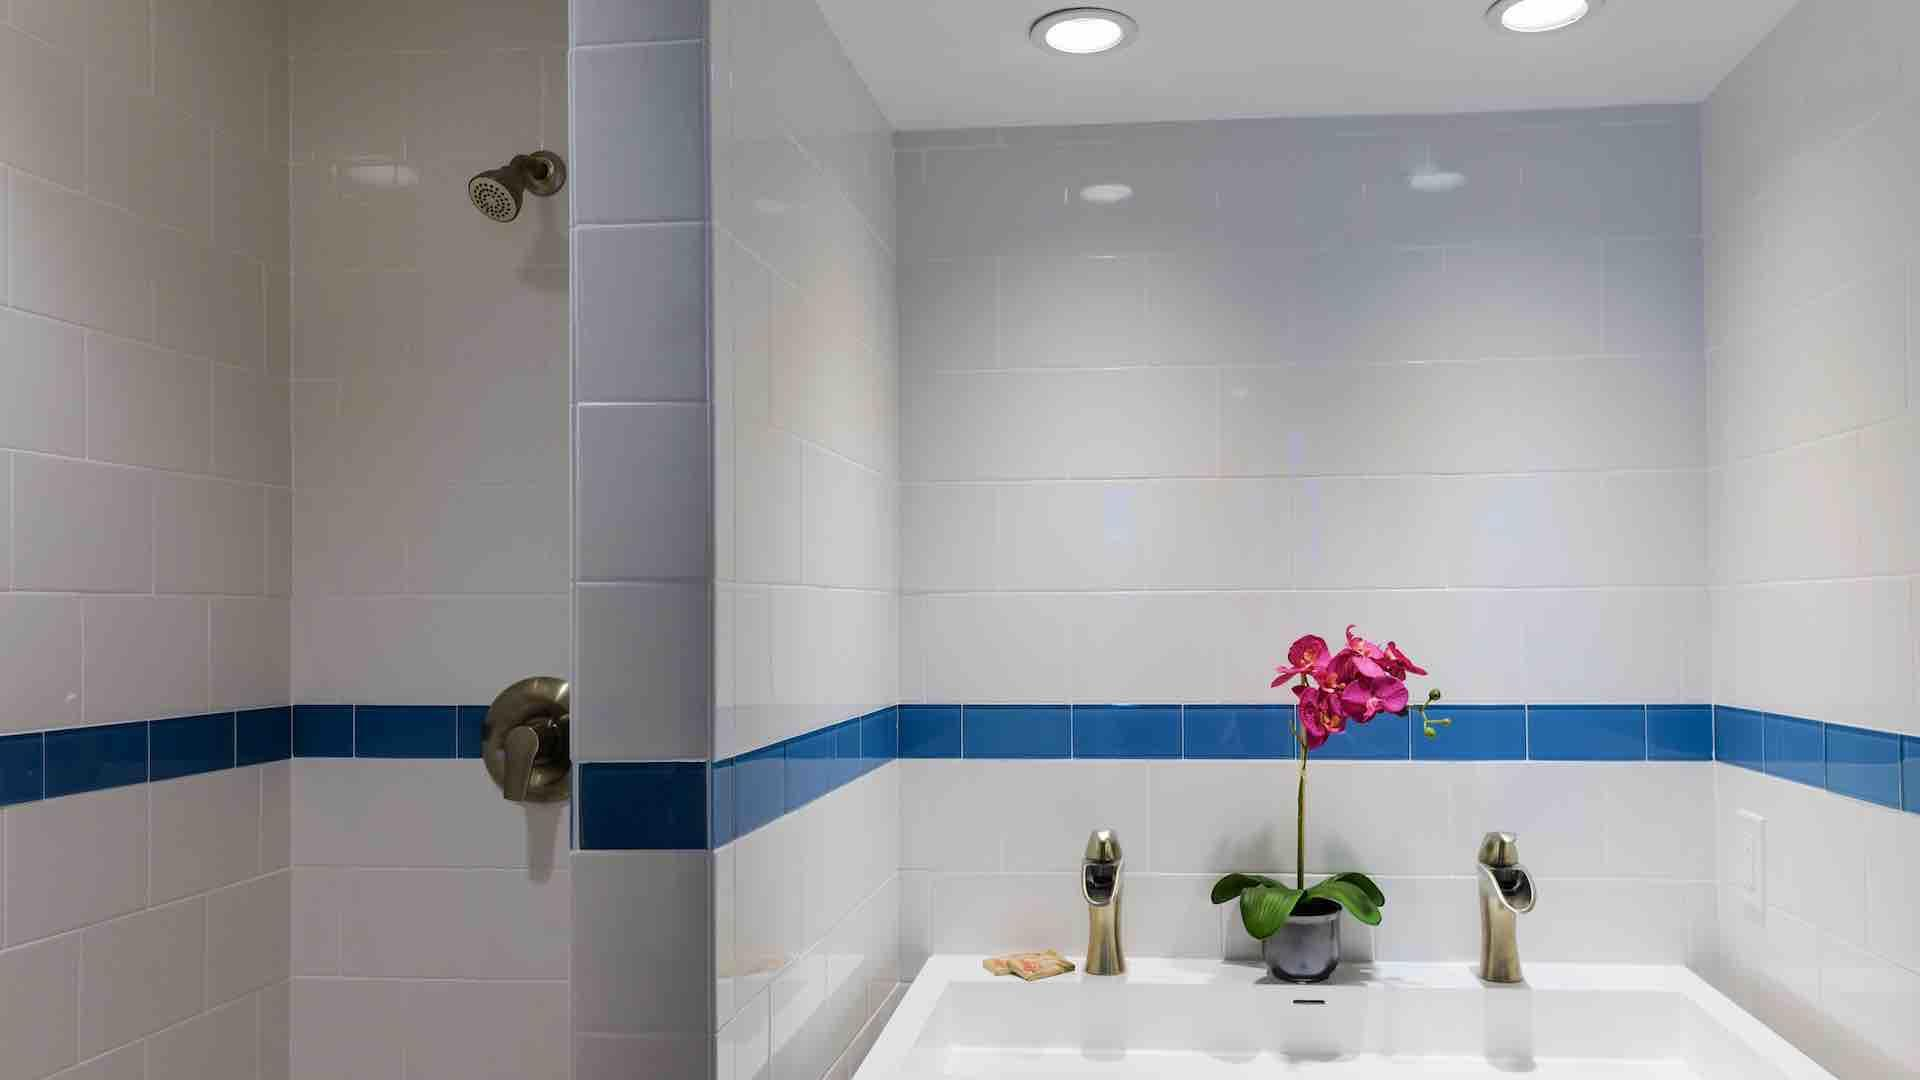 The en suite bathroom is fully tiled & features fully accessible roll in shower...